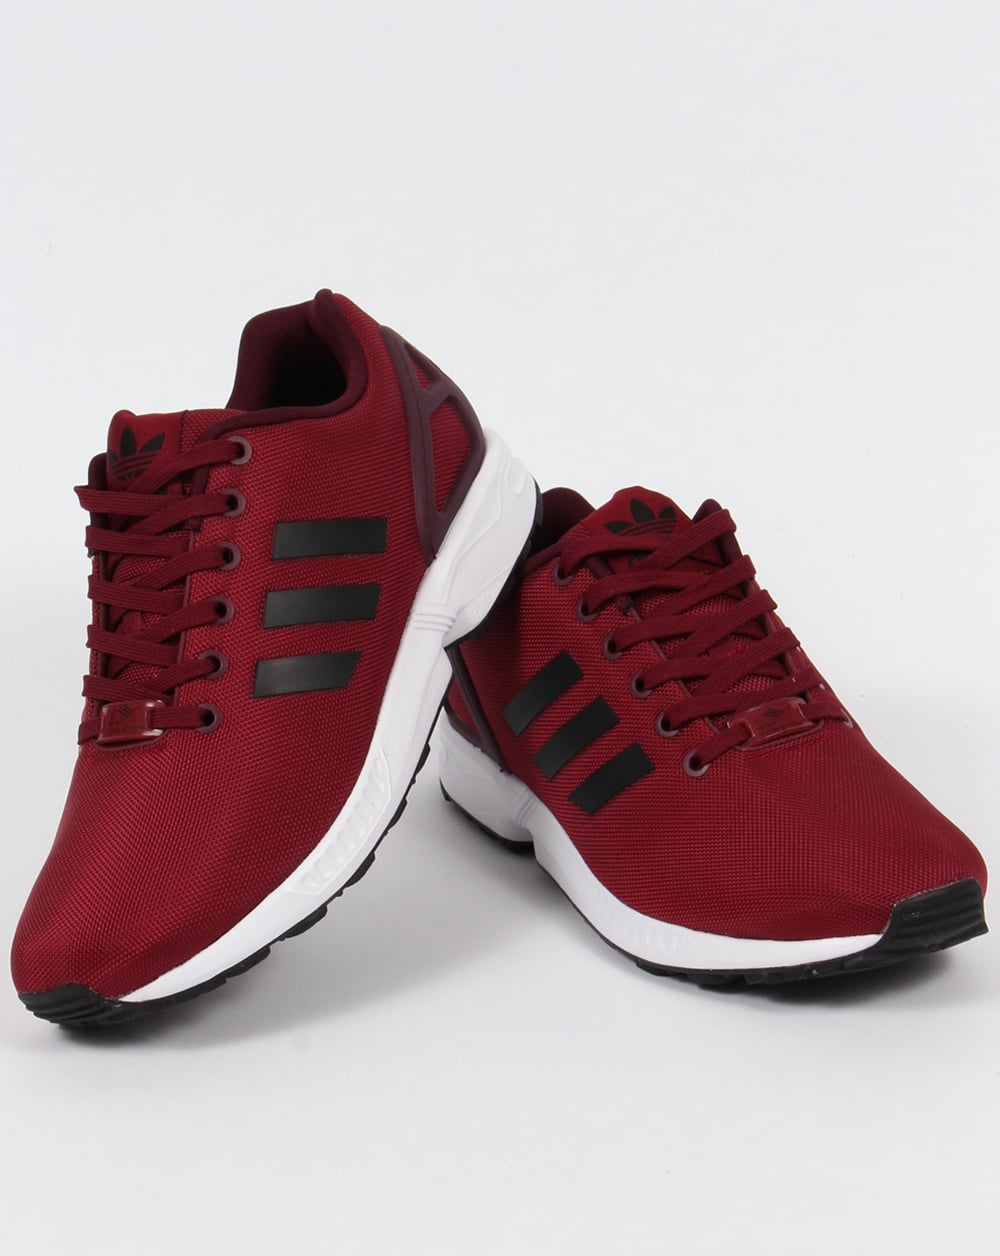 adidas zx flux trainers